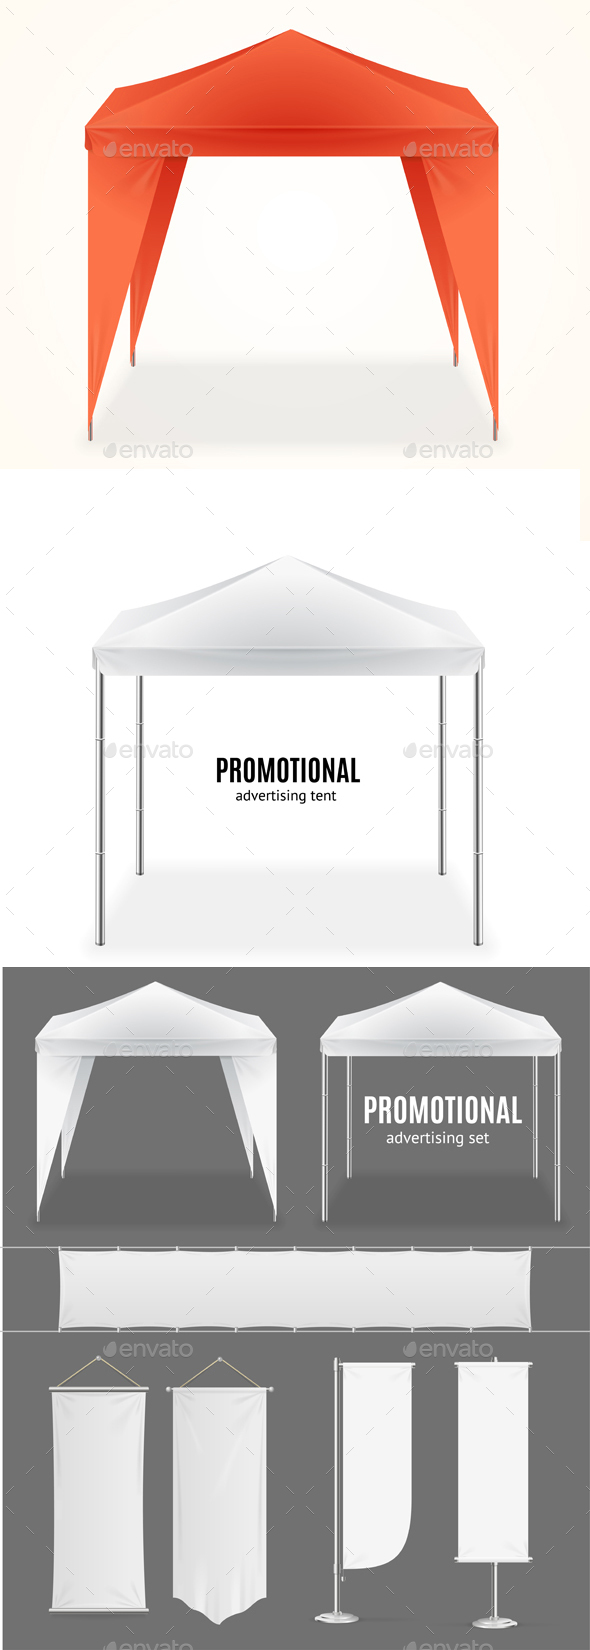 Realistic Promotional Advertising Set - Man-made Objects Objects